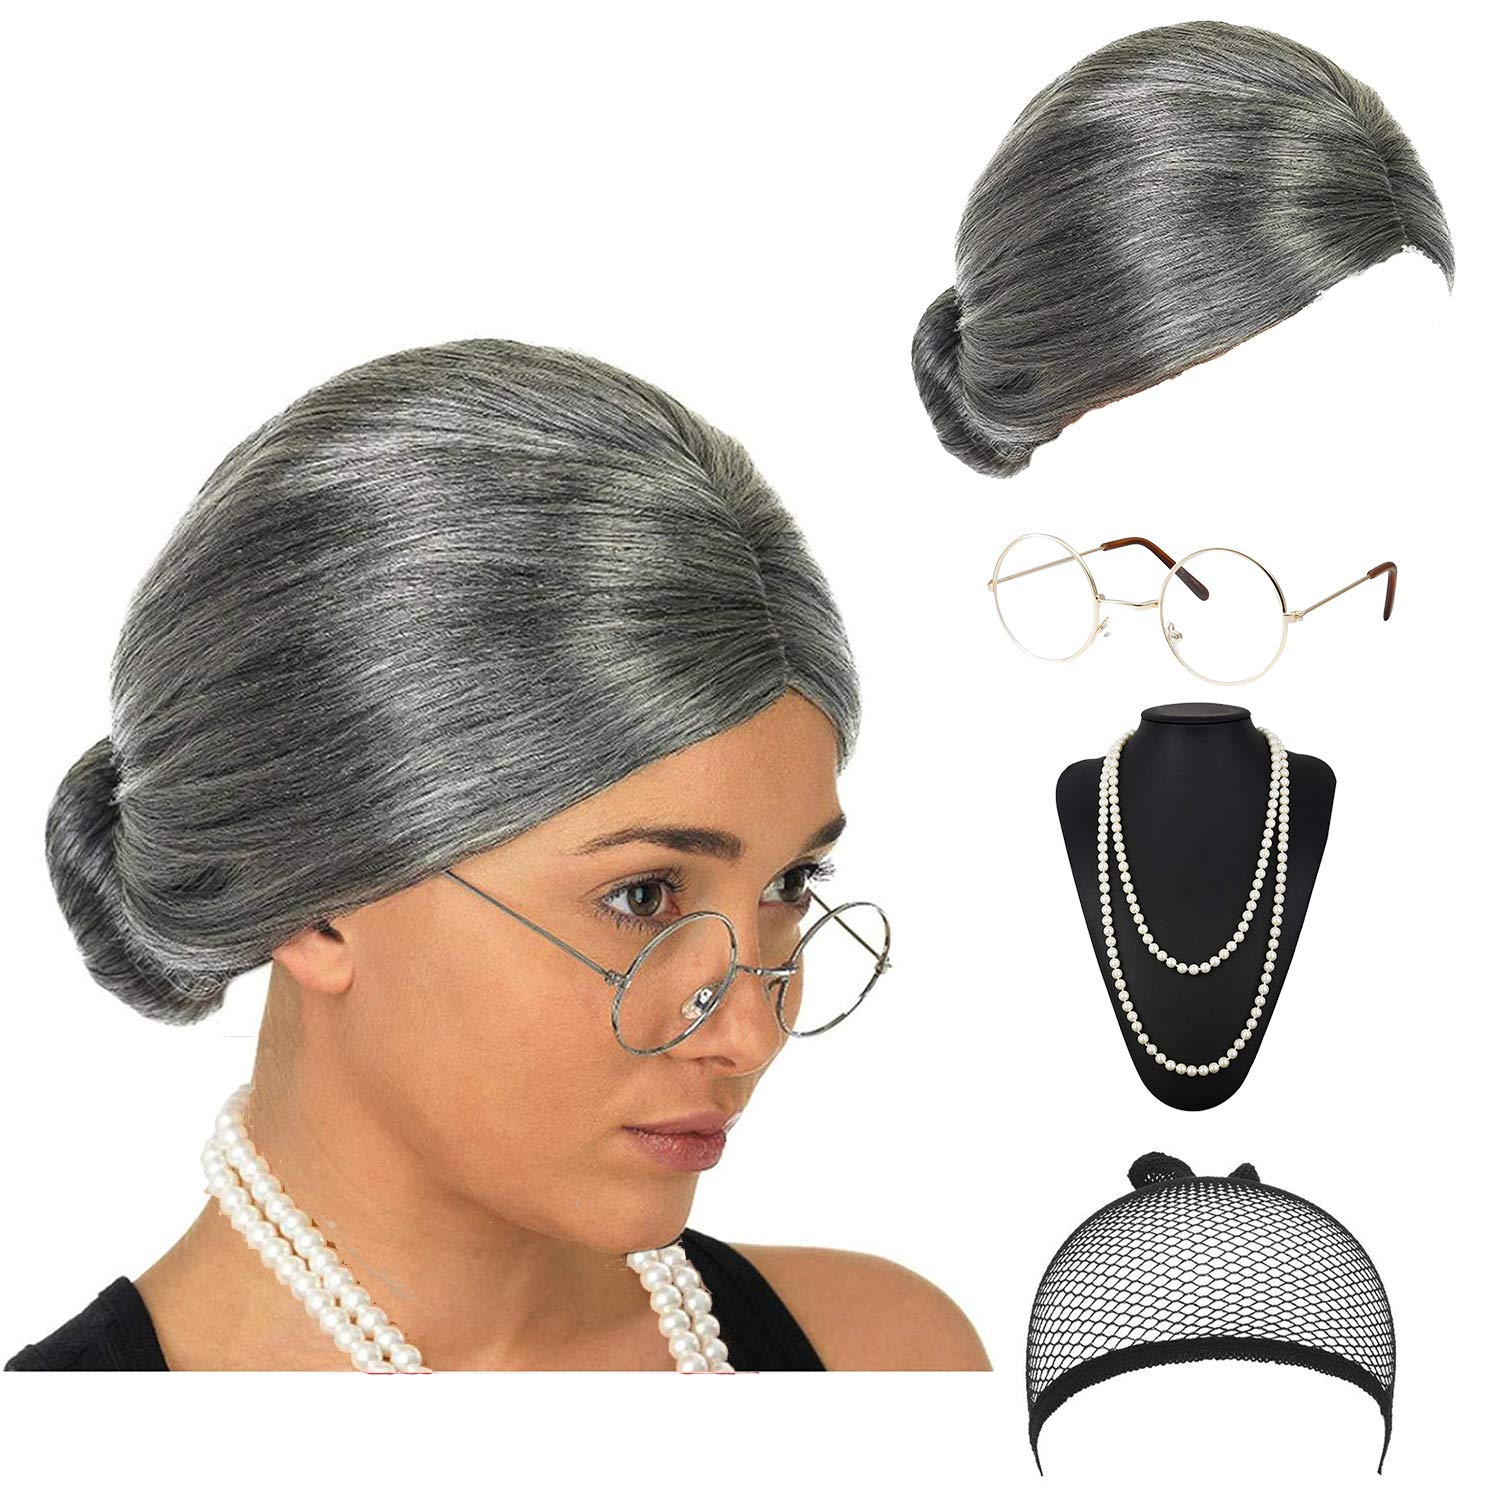 eforpretty Womens Cosplay Costume Old Lady Wig w//Round Glasses /& Pearl Necklace Beads Costume Accessories